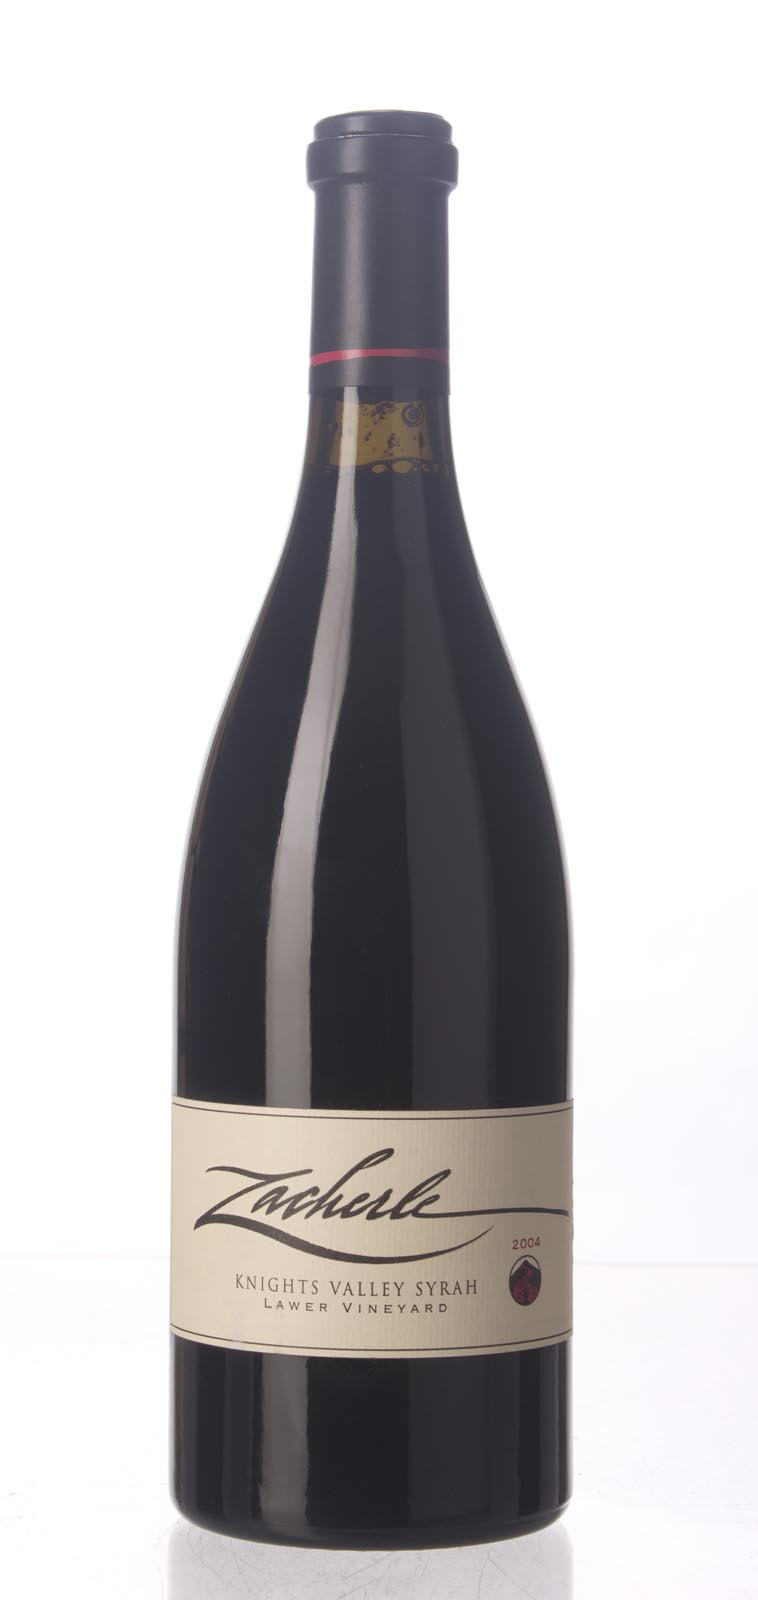 Zacherle Syrah Lawer Vineyard 2004, 750mL () from The BPW - Merchants of rare and fine wines.